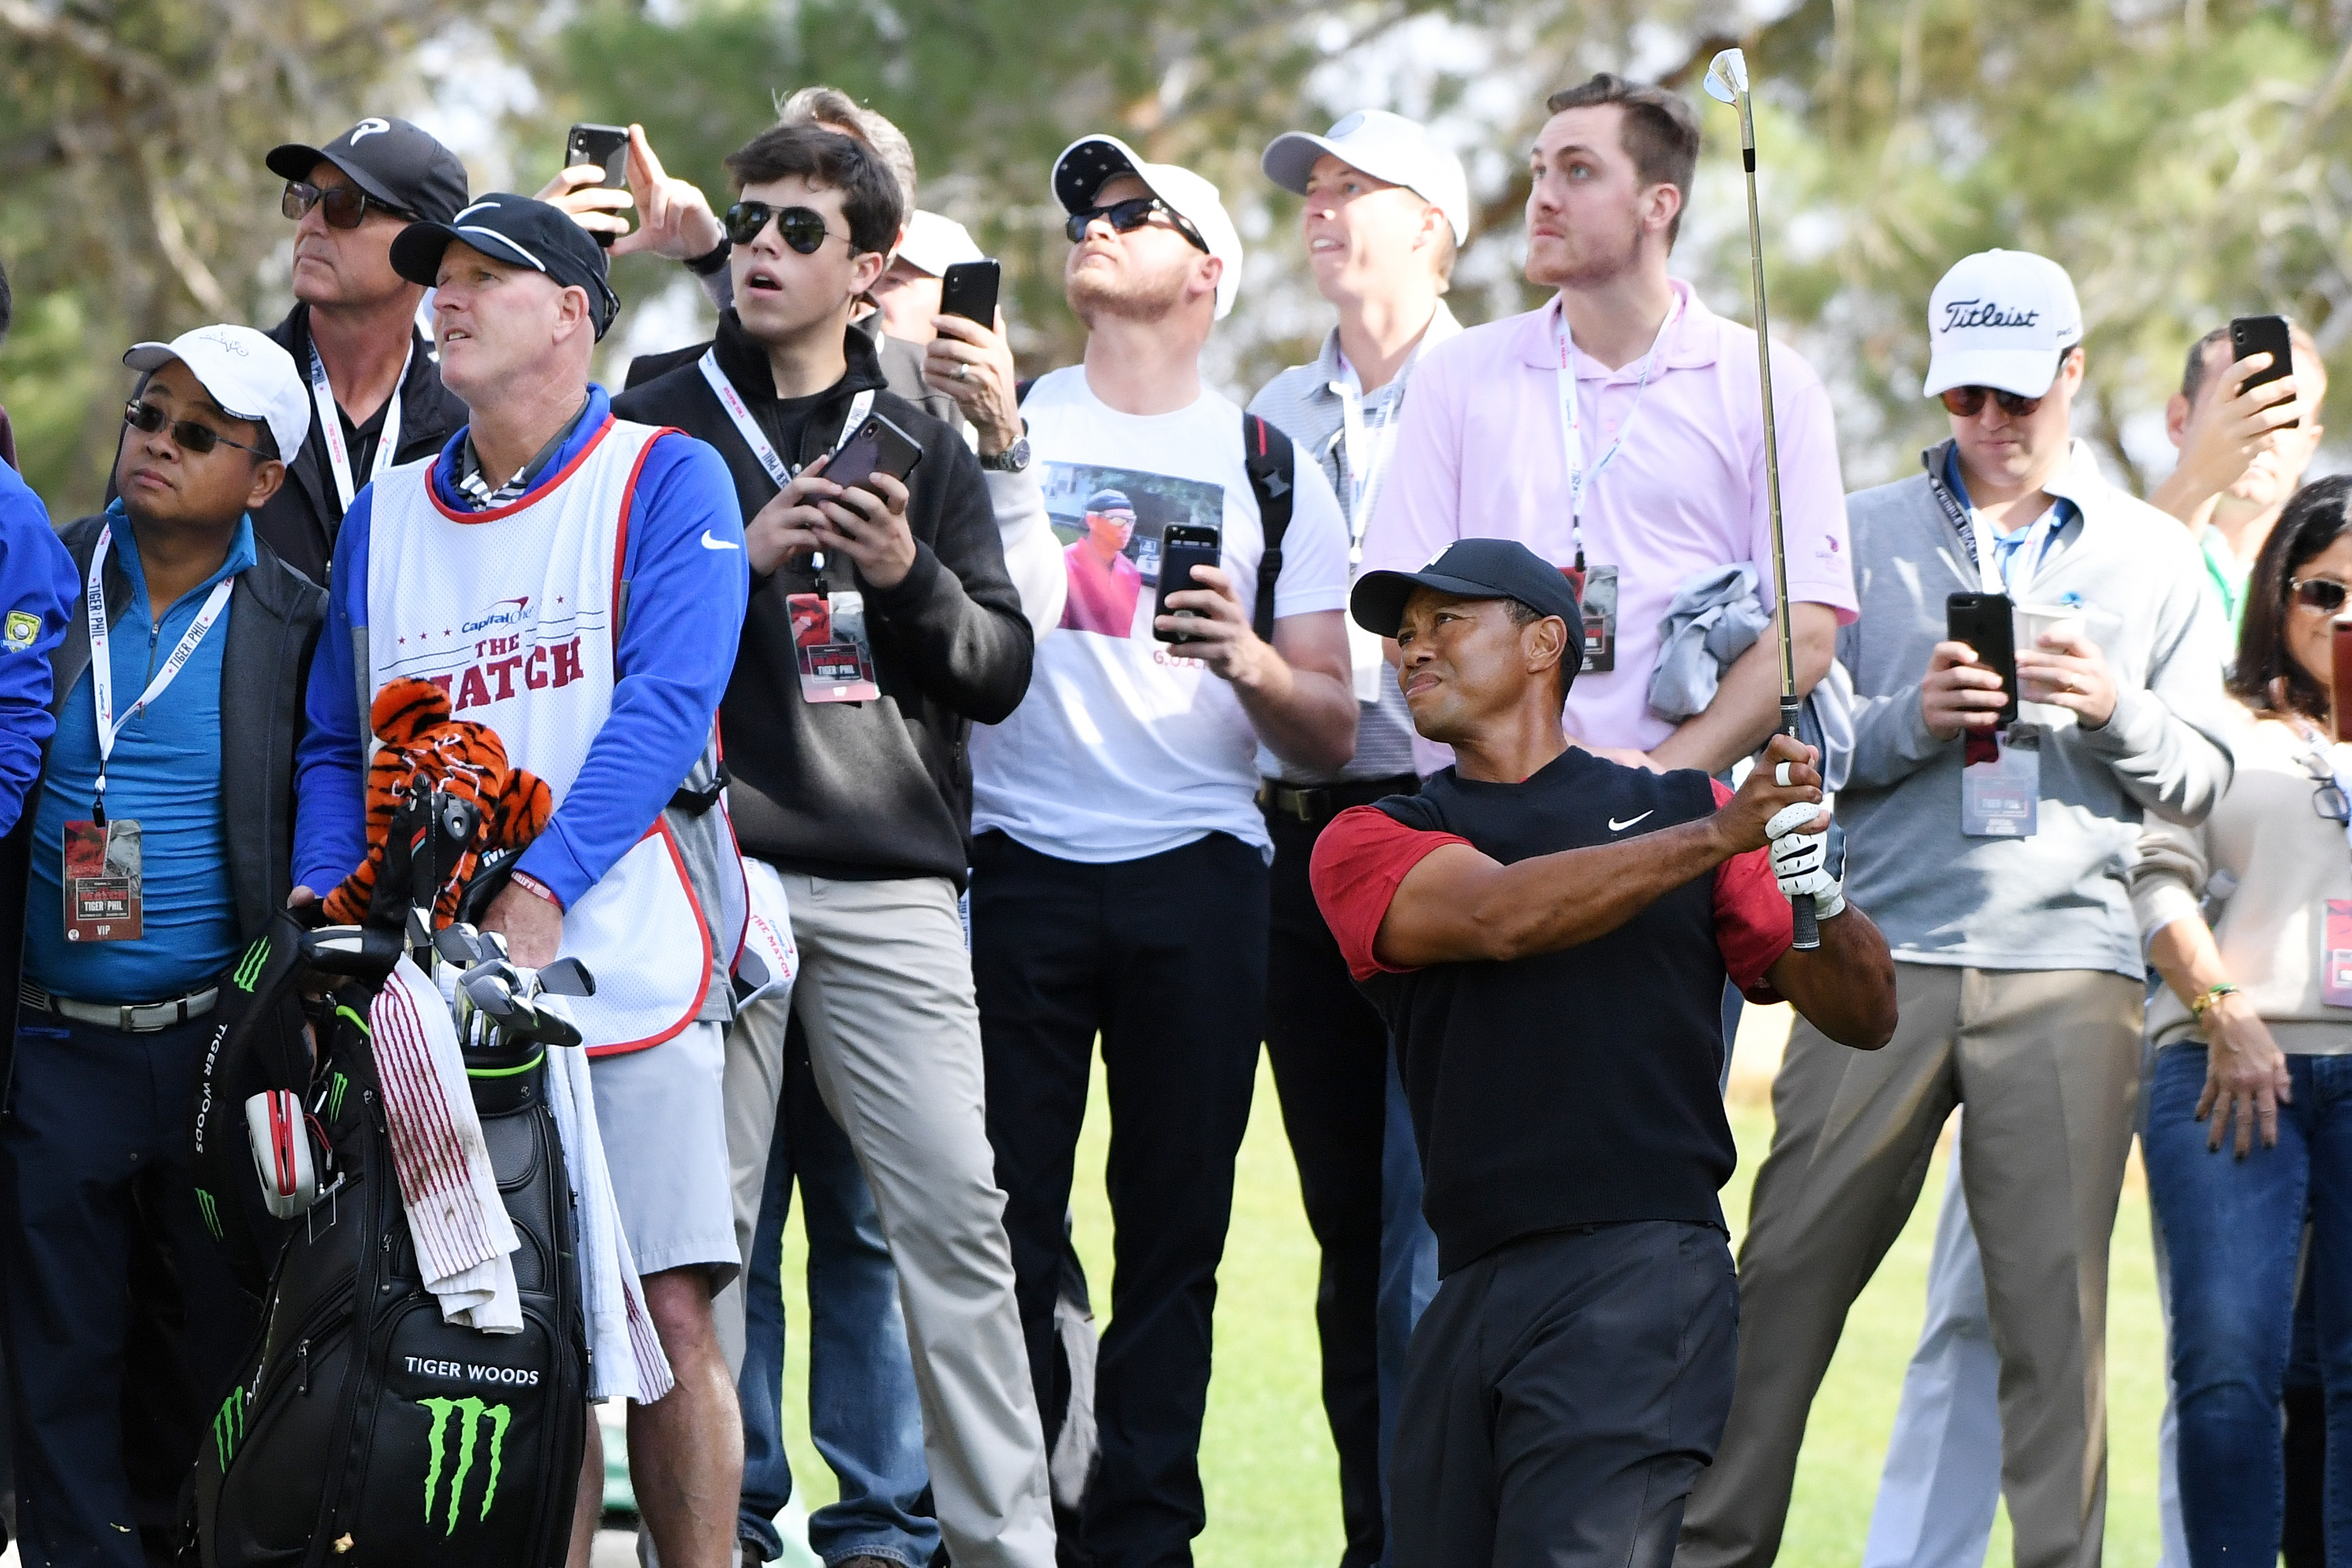 LAS VEGAS, NV - NOVEMBER 23: Tiger Woods plays his second shot on the third hole during The Match: Tiger vs Phil at Shadow Creek Golf Course on November 23, 2018 in Las Vegas, Nevada. (Photo by Harry How/Getty Images for The Match)